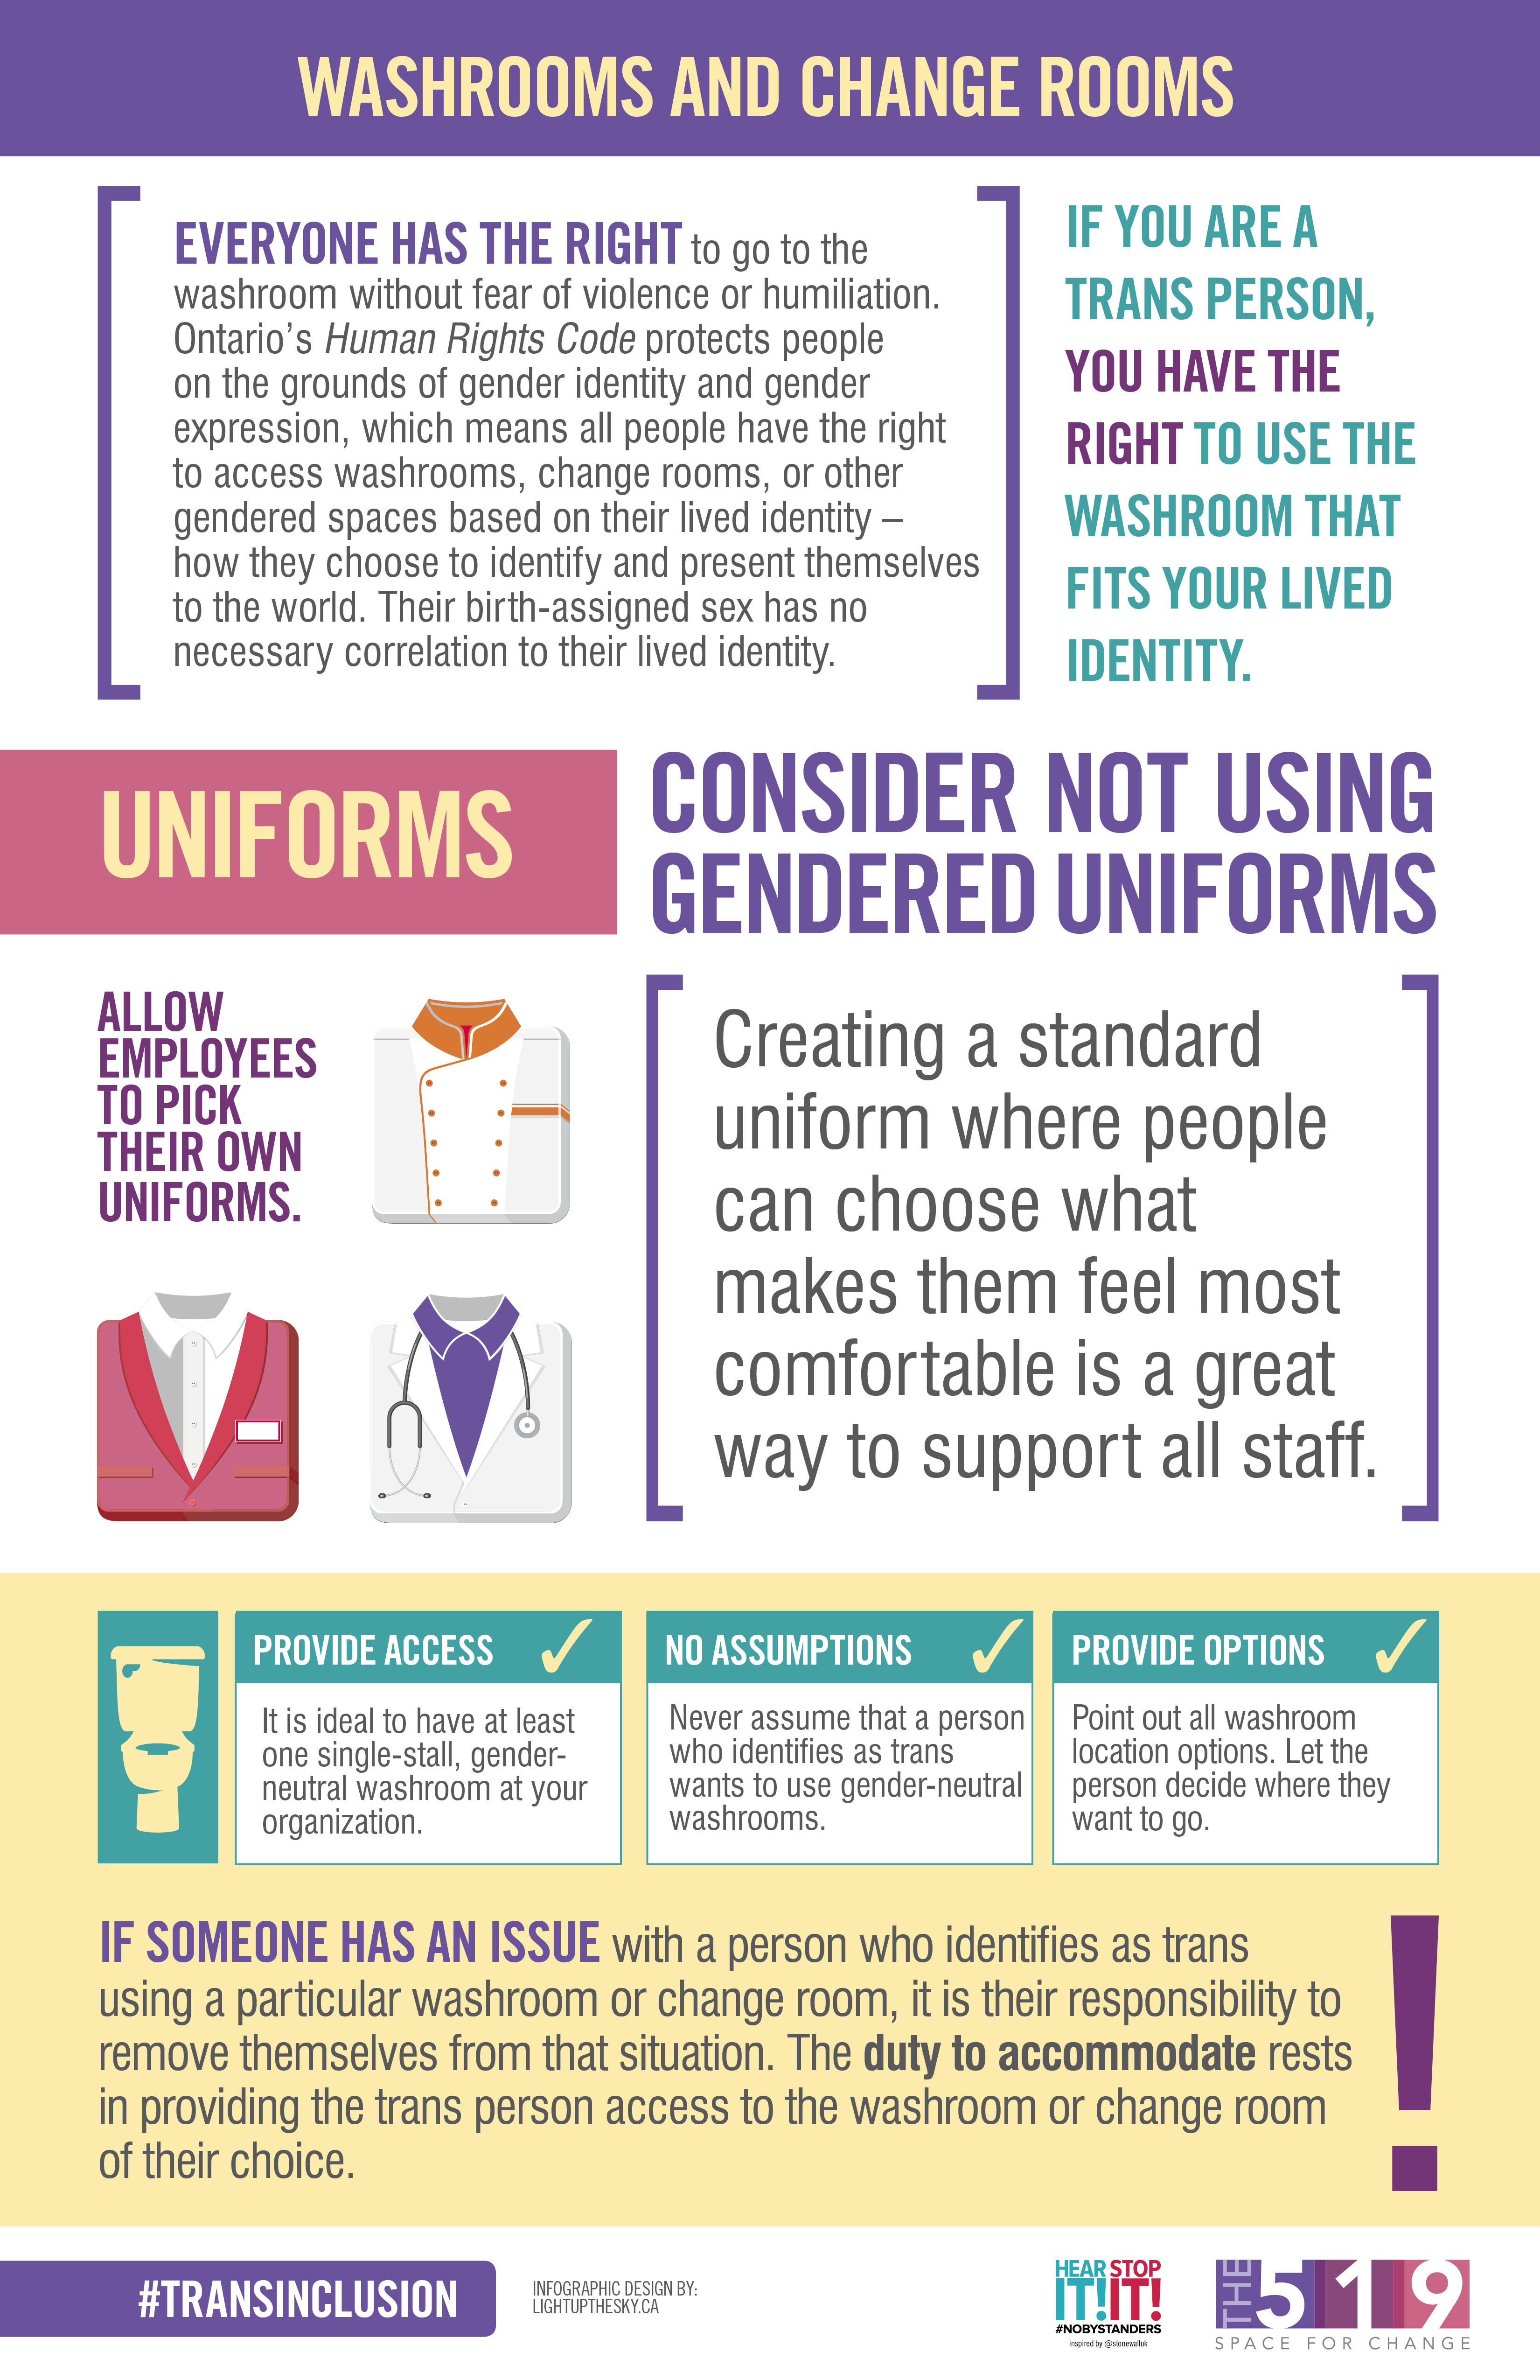 Info Sheet: Washrooms and Change Rooms